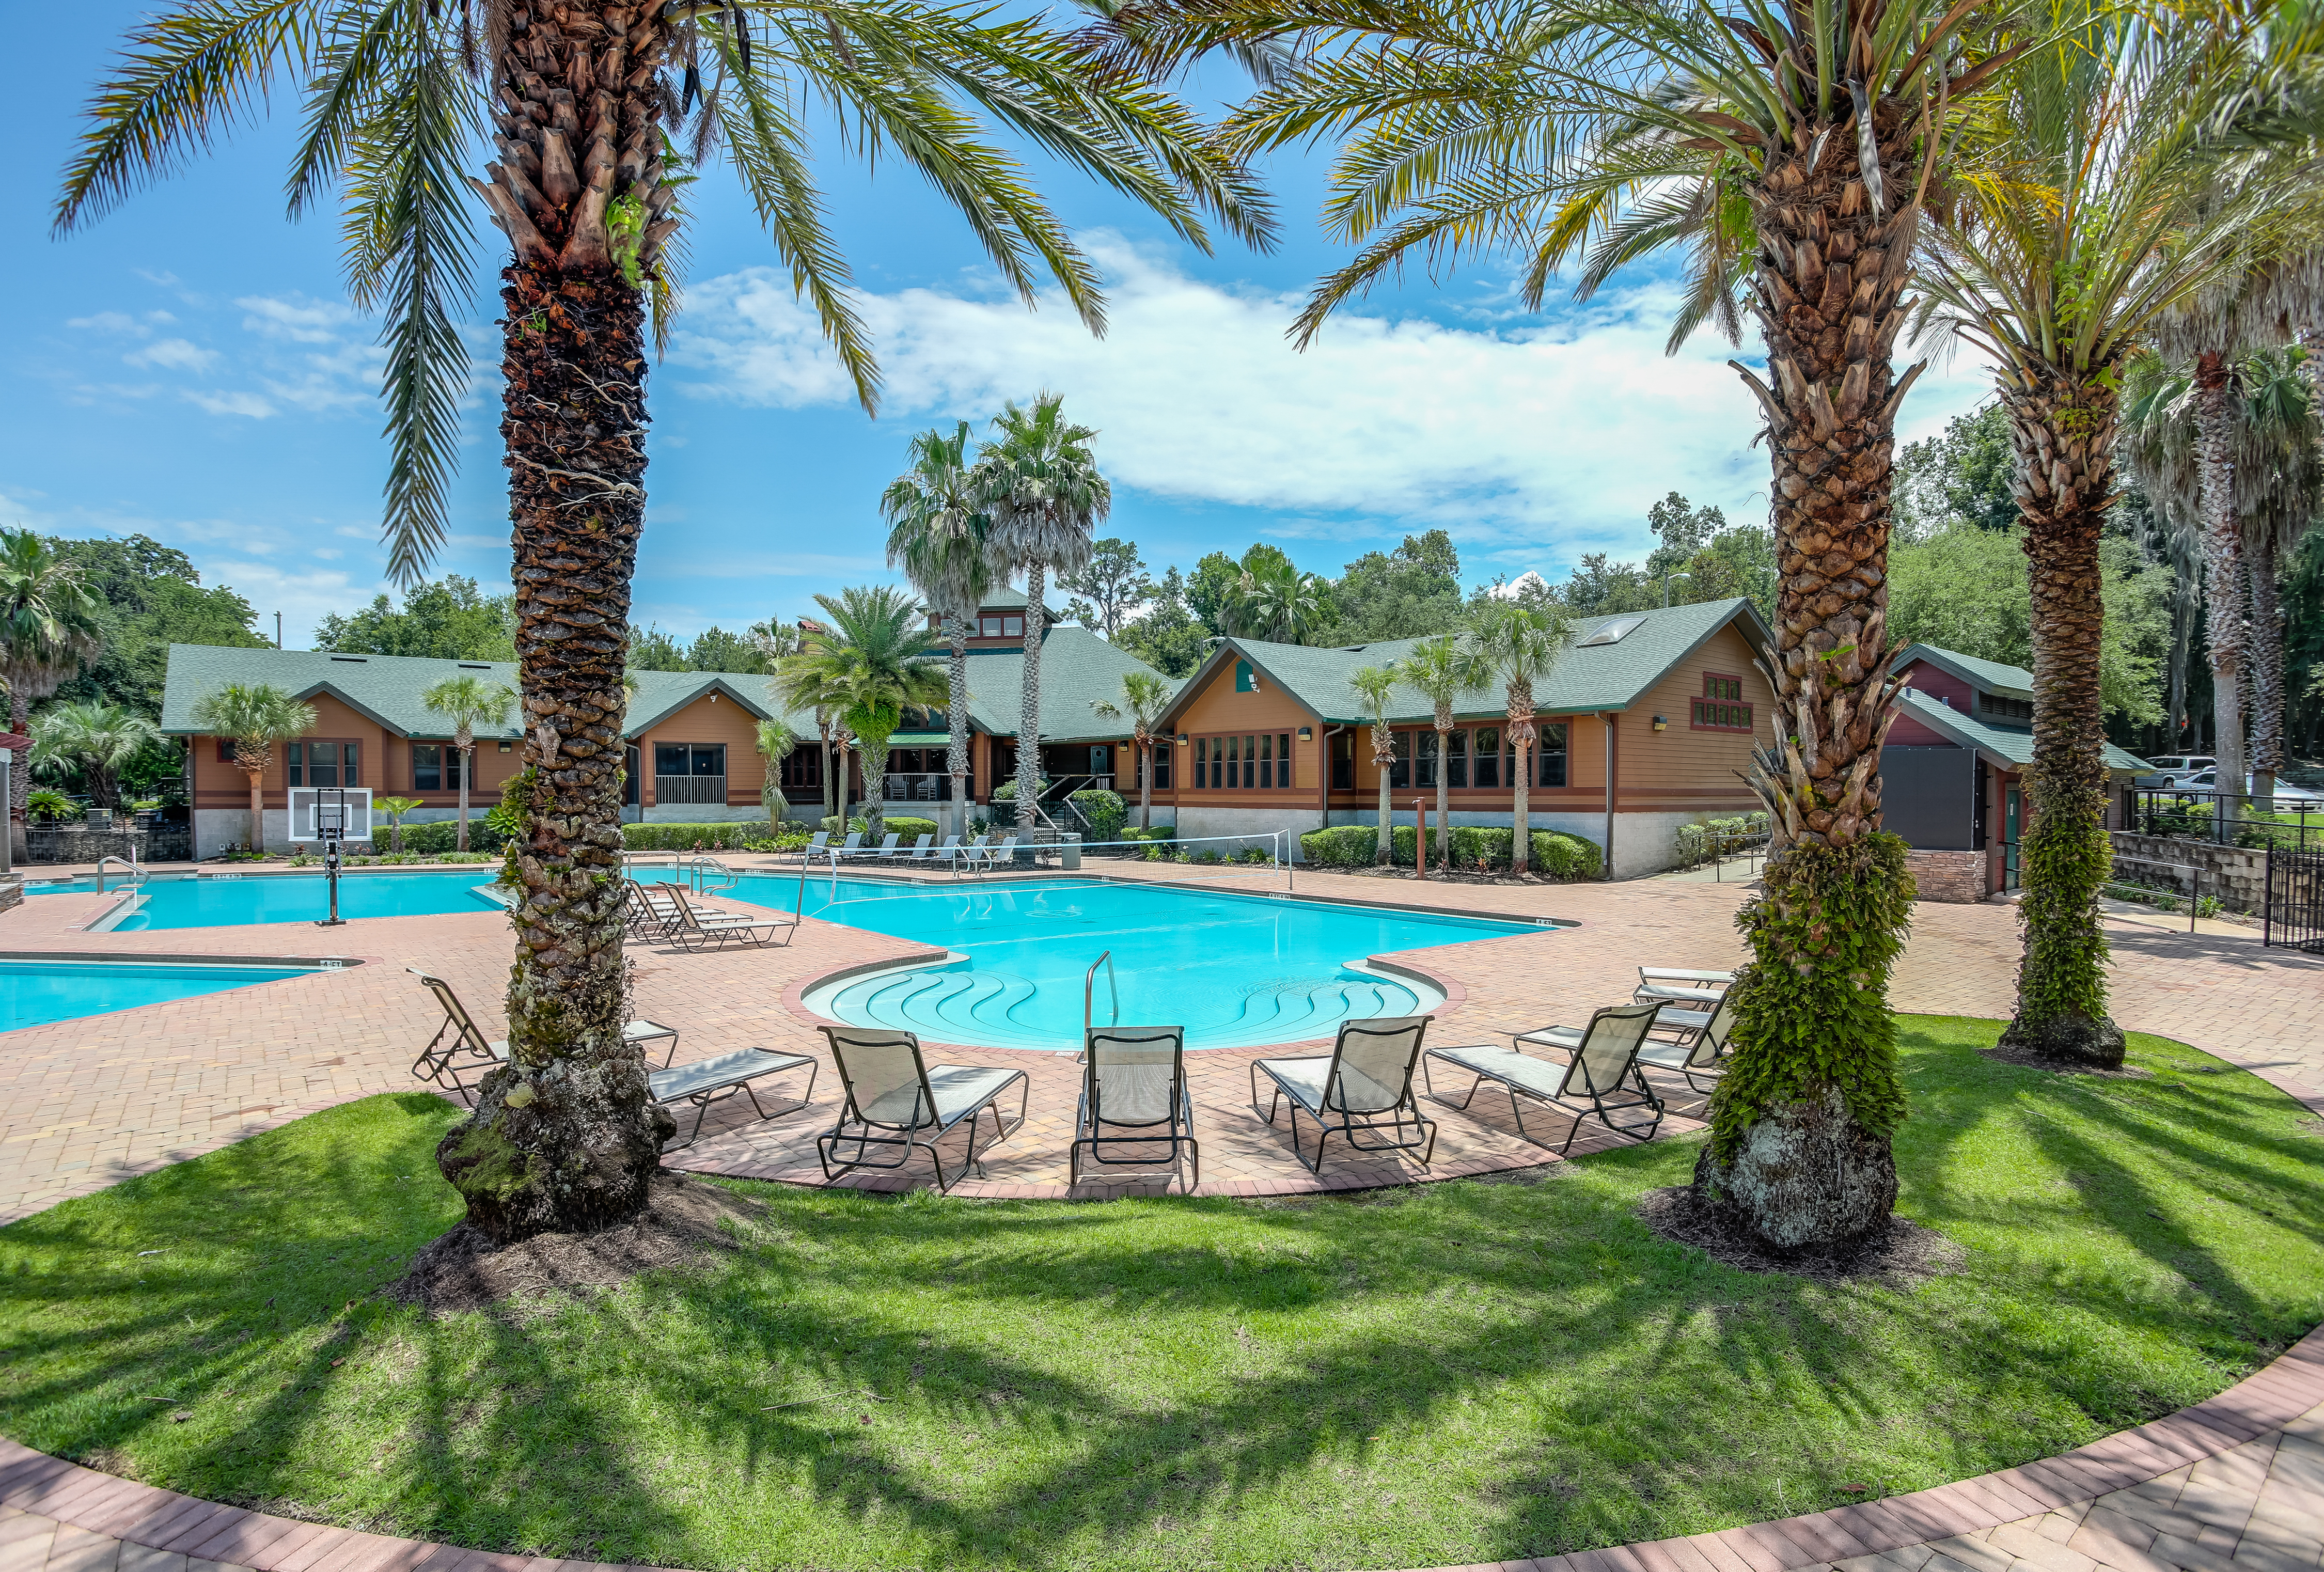 Campus Lodge Gainesville reviews | 2800 SW Williston Rd - Gainesville FL